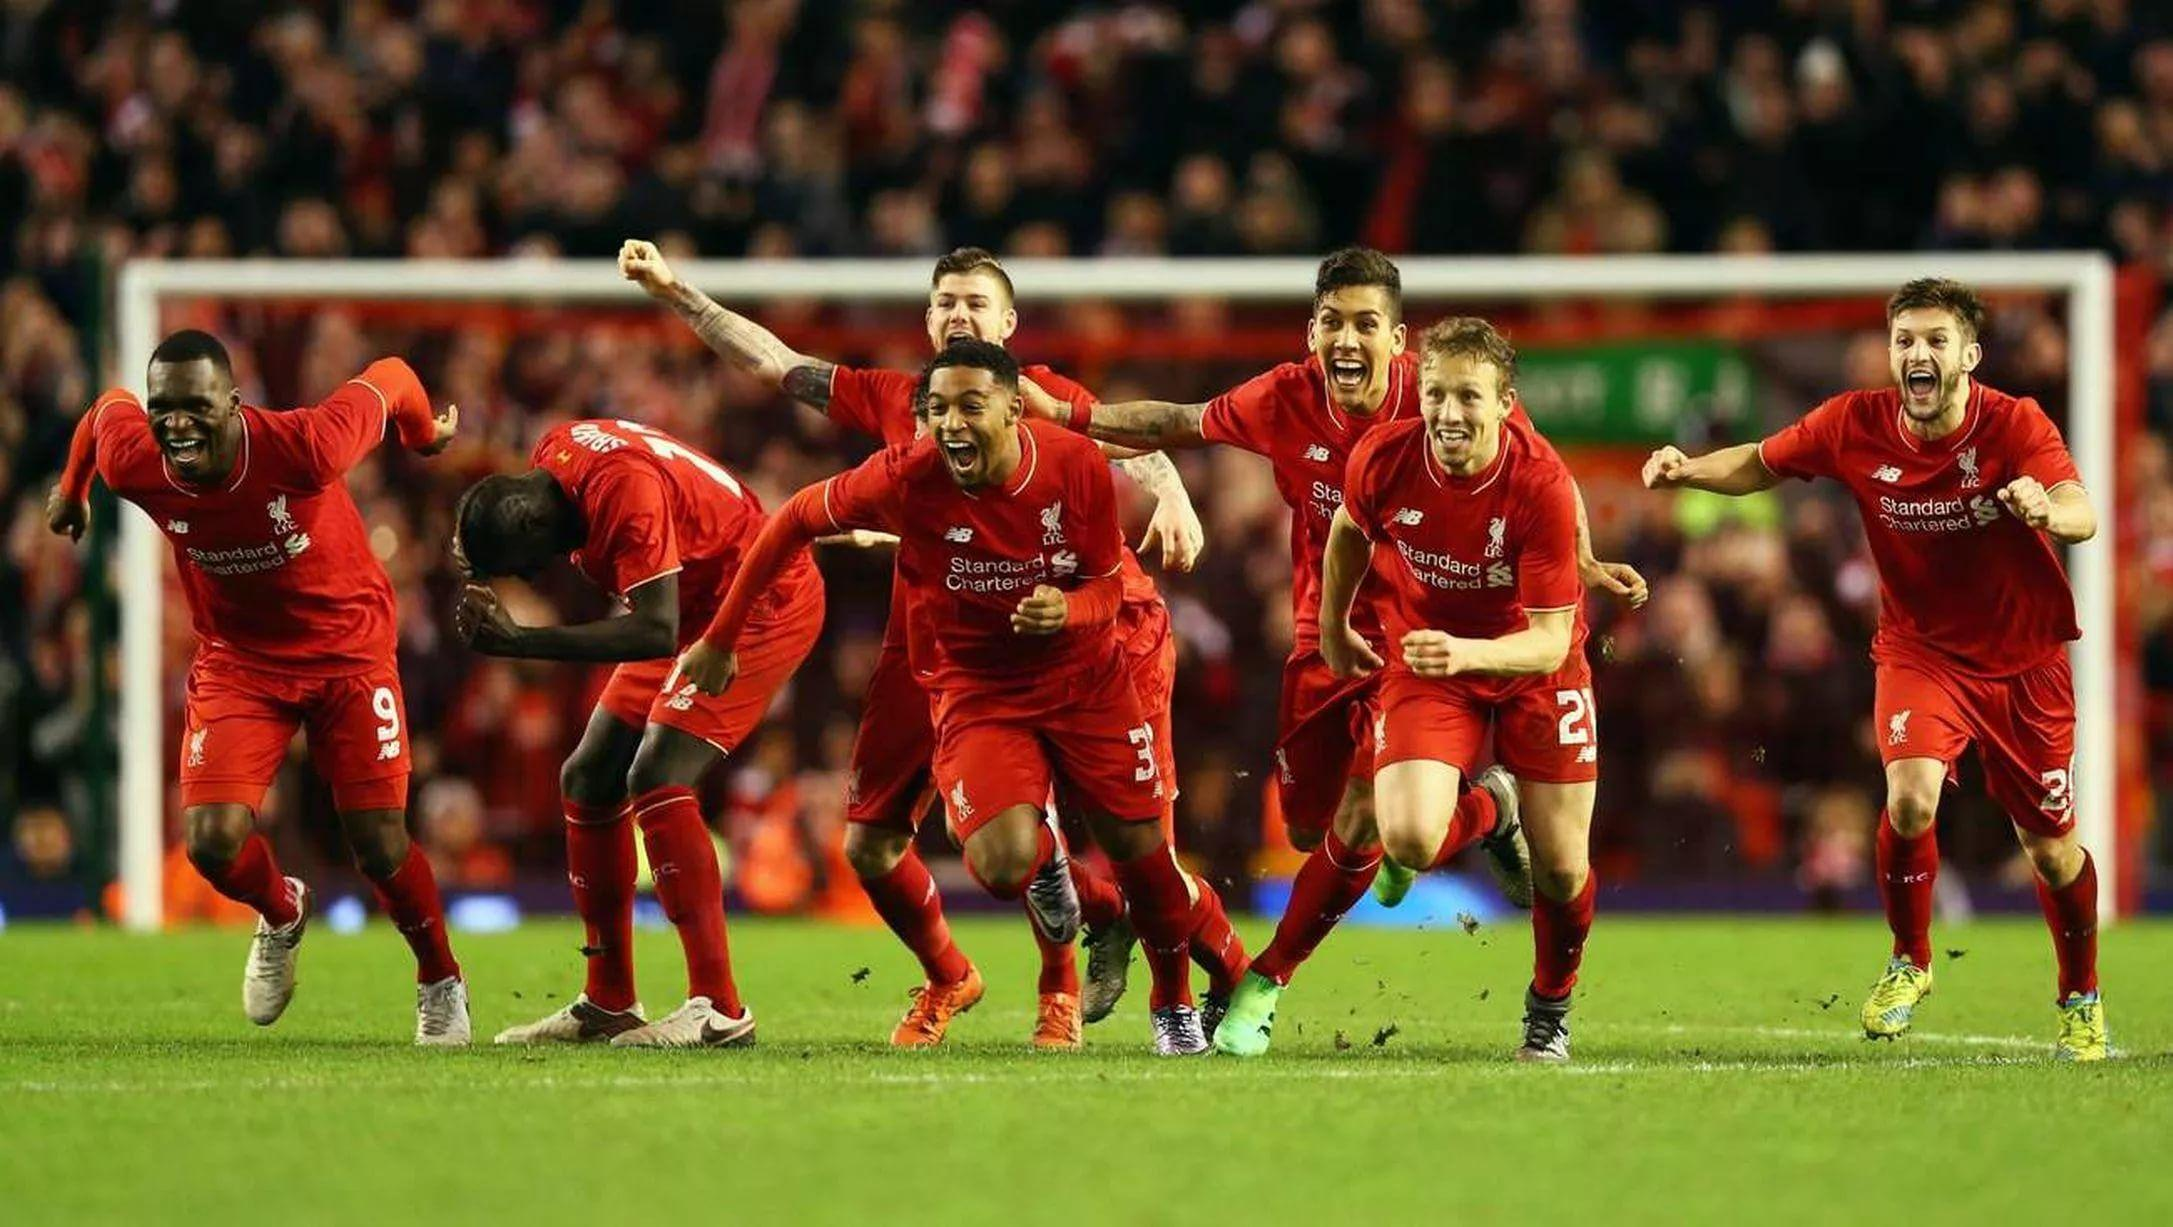 Liverpool 2018 wallpapers wallpaper cave - Lfc pictures free ...